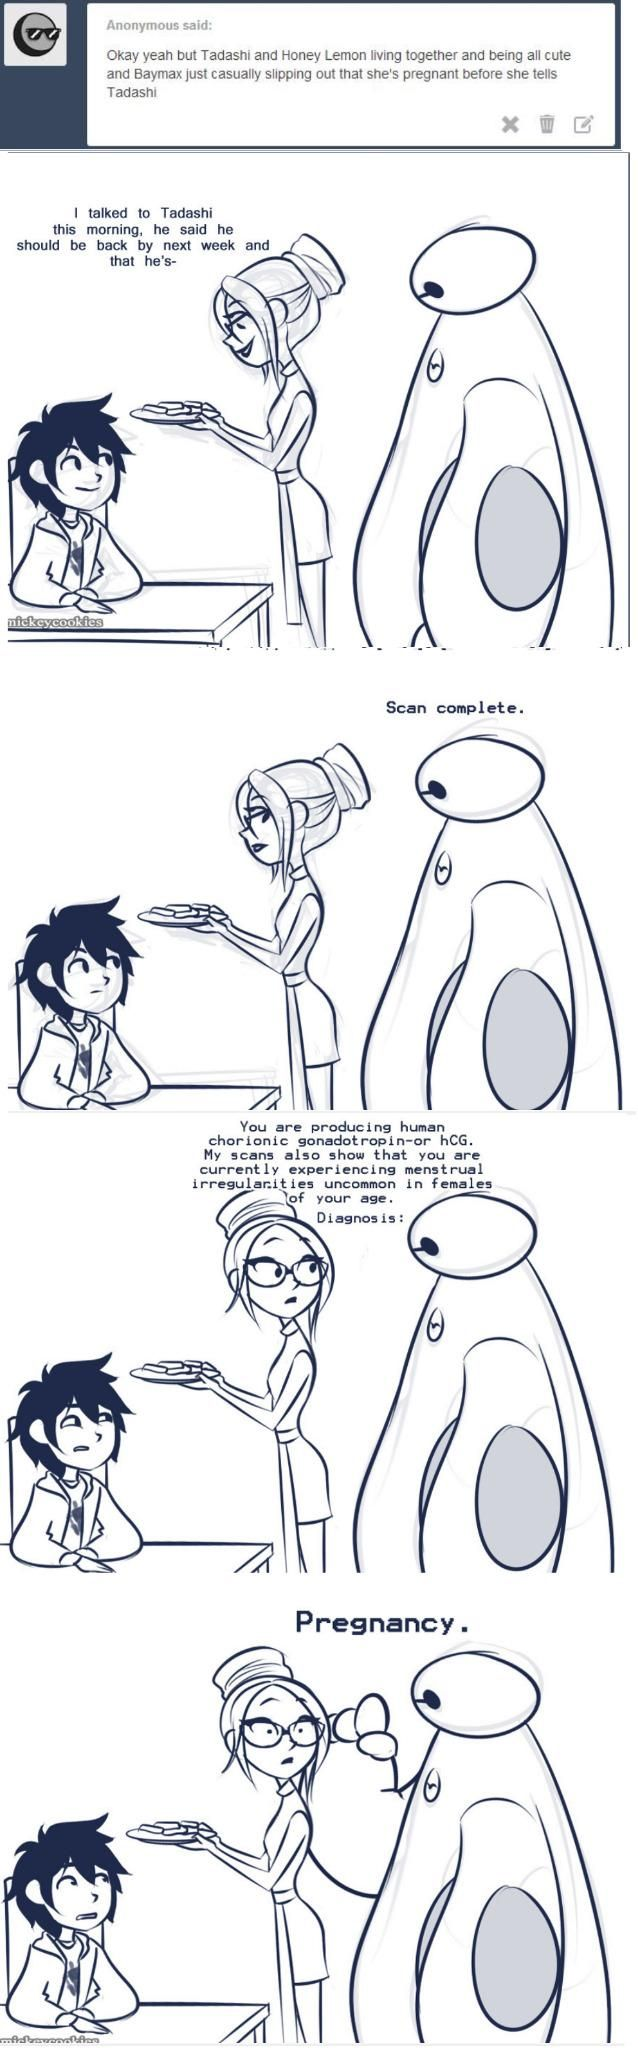 HIRO'S FACE THO. POOR THING. I love this because I always wanted Honey Lemon and Tadashi to get married!